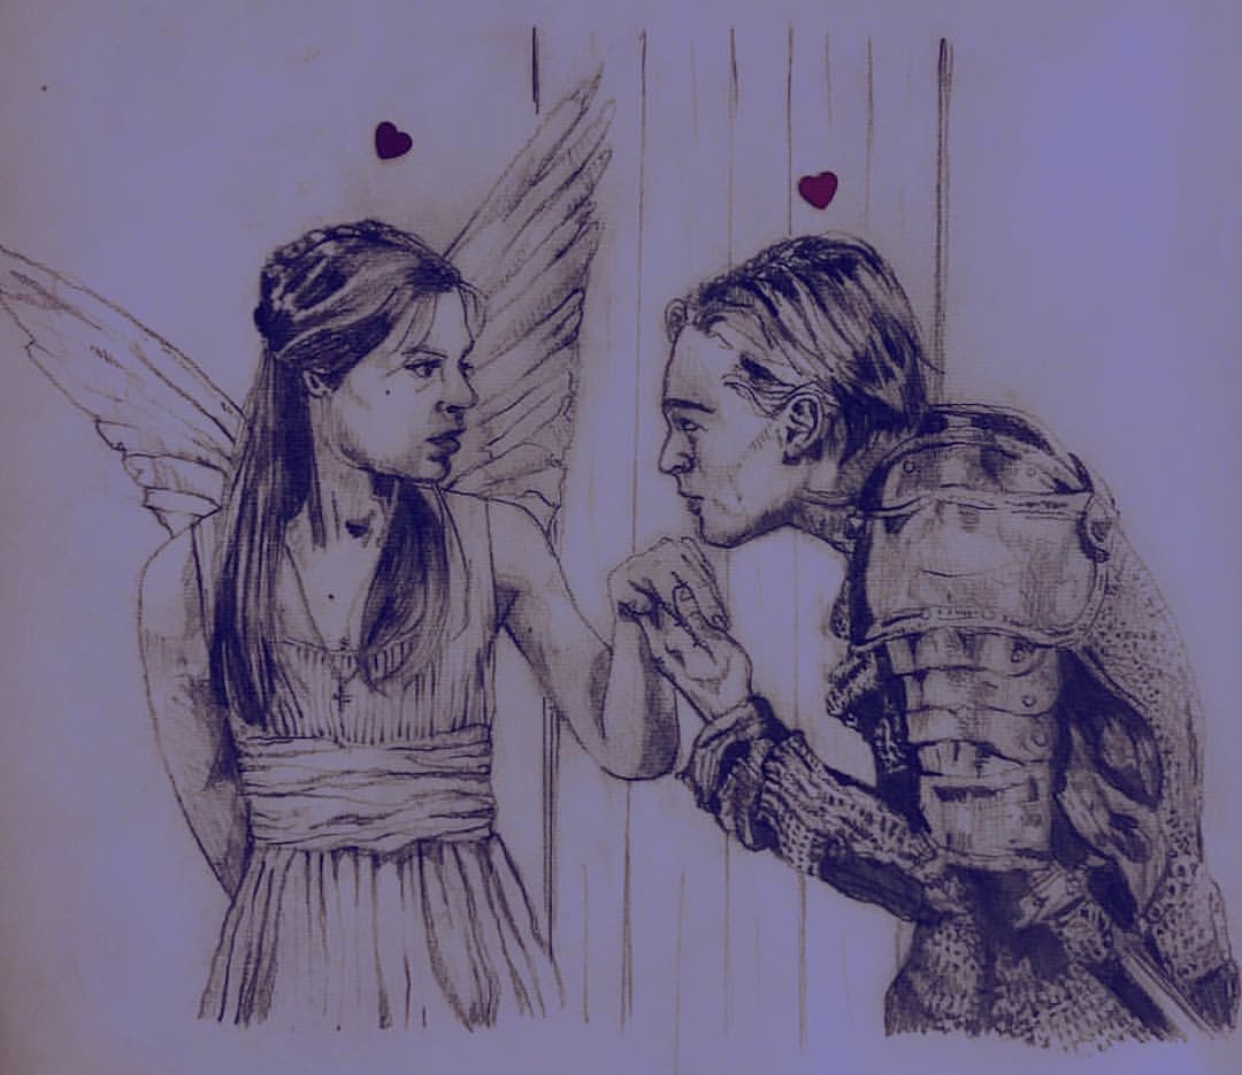 romeo and juliet baz luhrmann alexandra godwin your place to space drawing